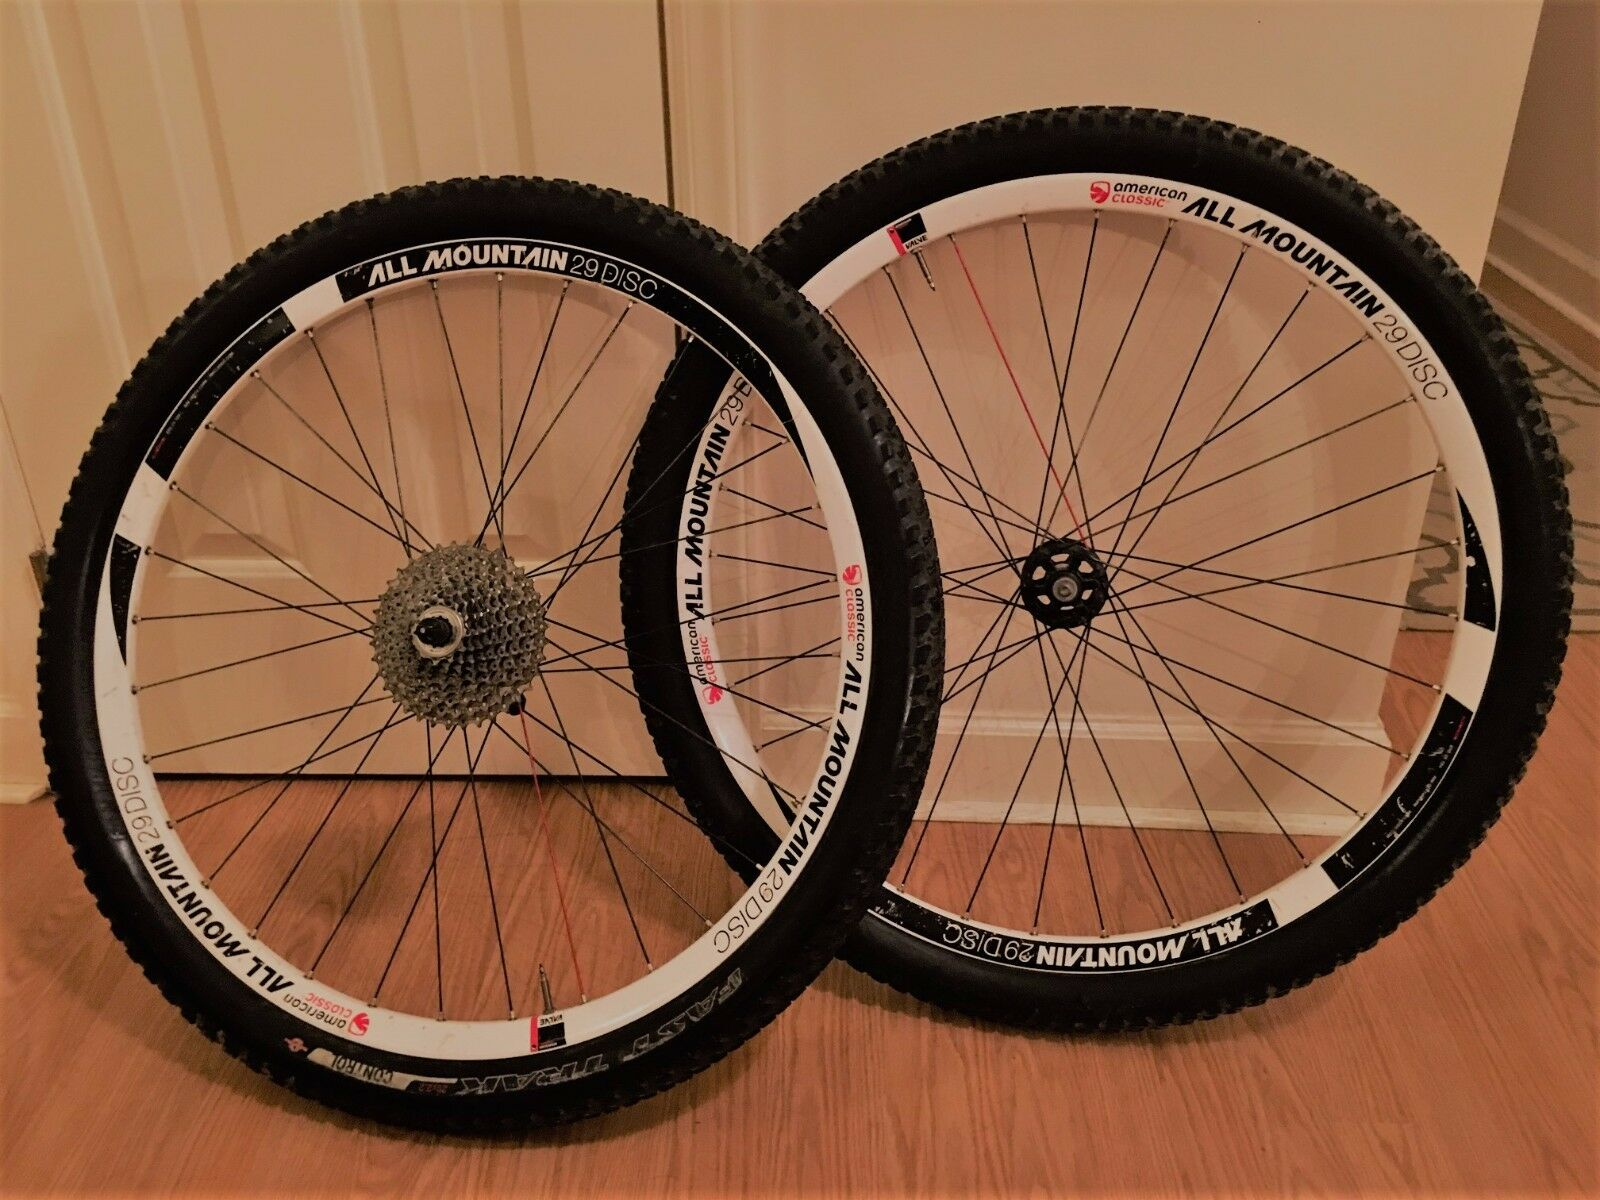 American Classic 29  All Mountain Disc Wheelset,Tires and Cassette - ERD29 594